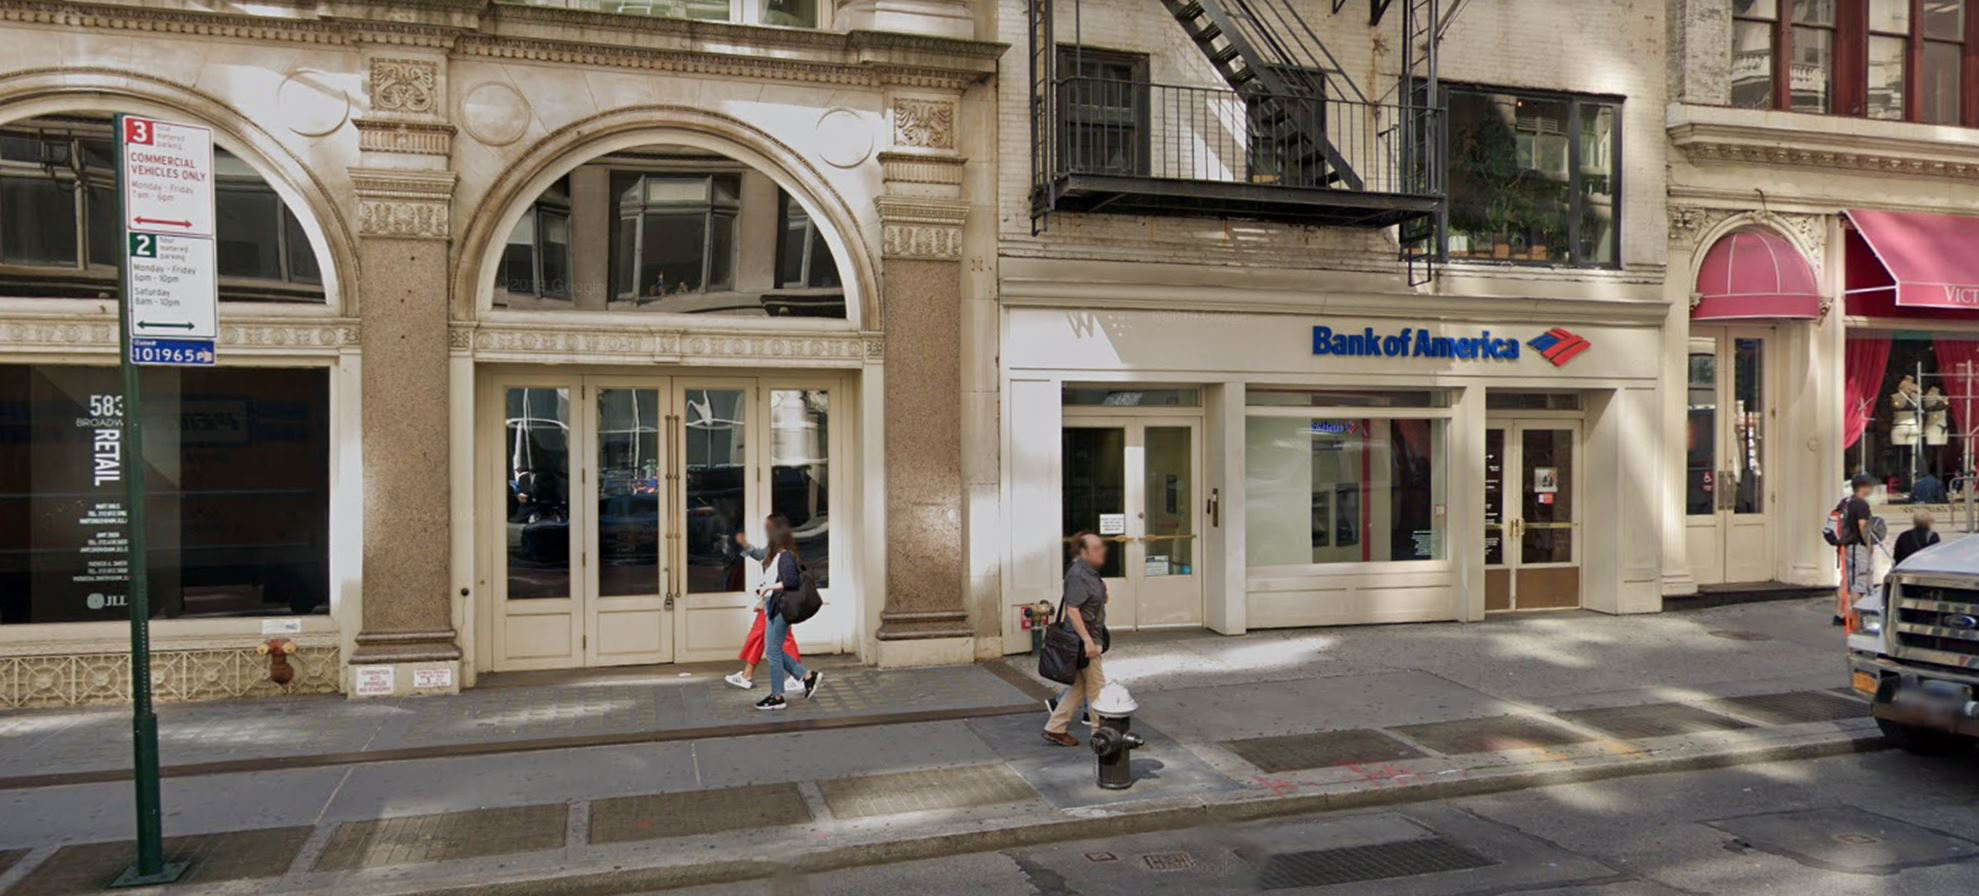 Bank of America financial center with walk-up ATM | 589 Broadway, New York, NY 10012